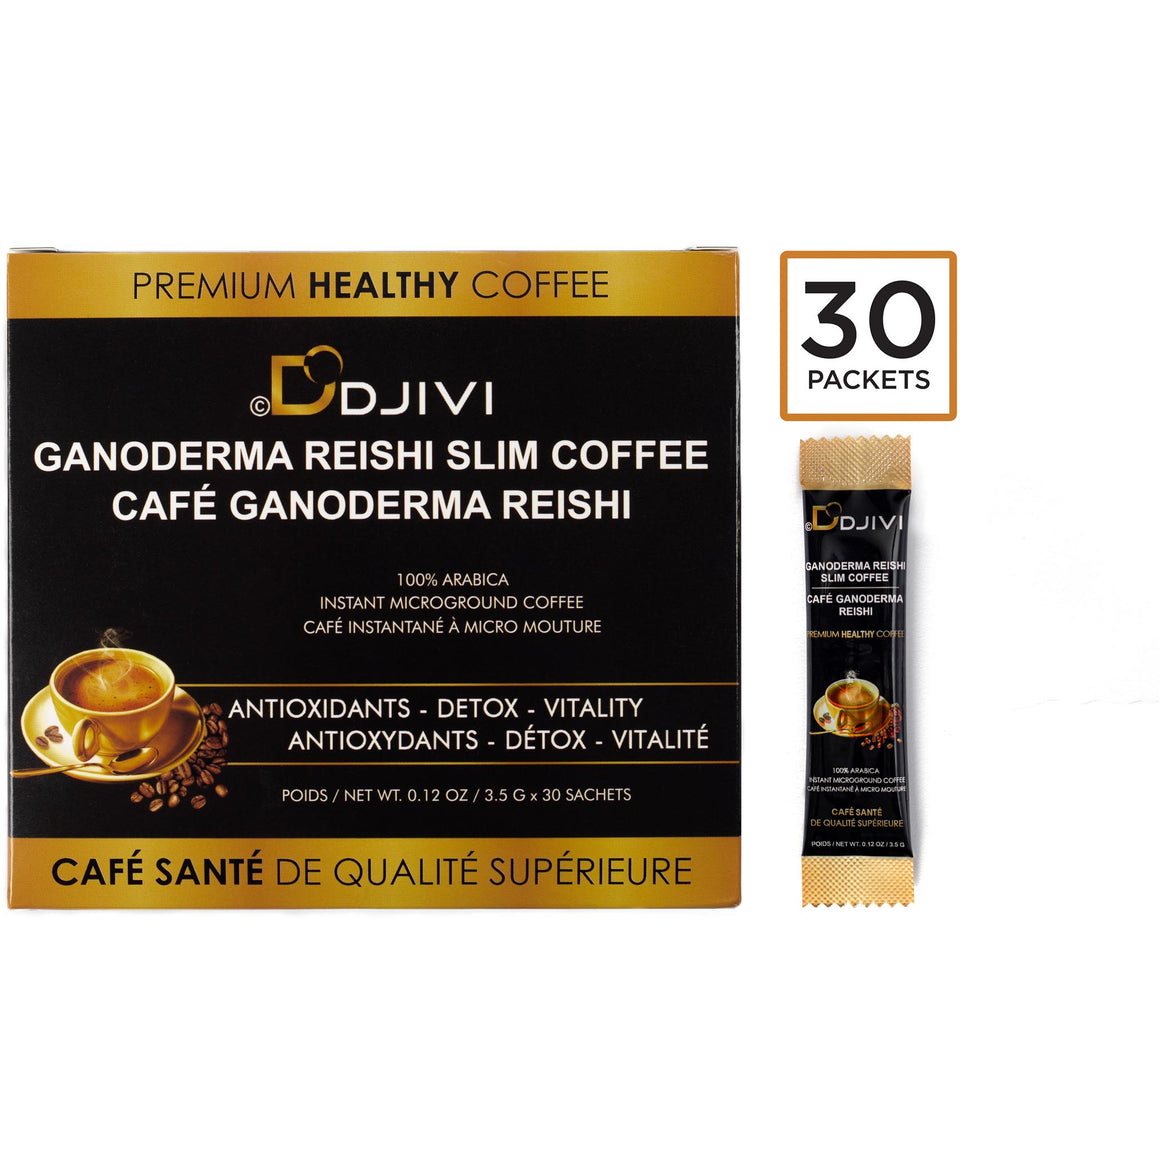 GANODERMA REISHI MUSHROOM COFFEE  (1 BOX OF 30 BAGS) - DODJIVI